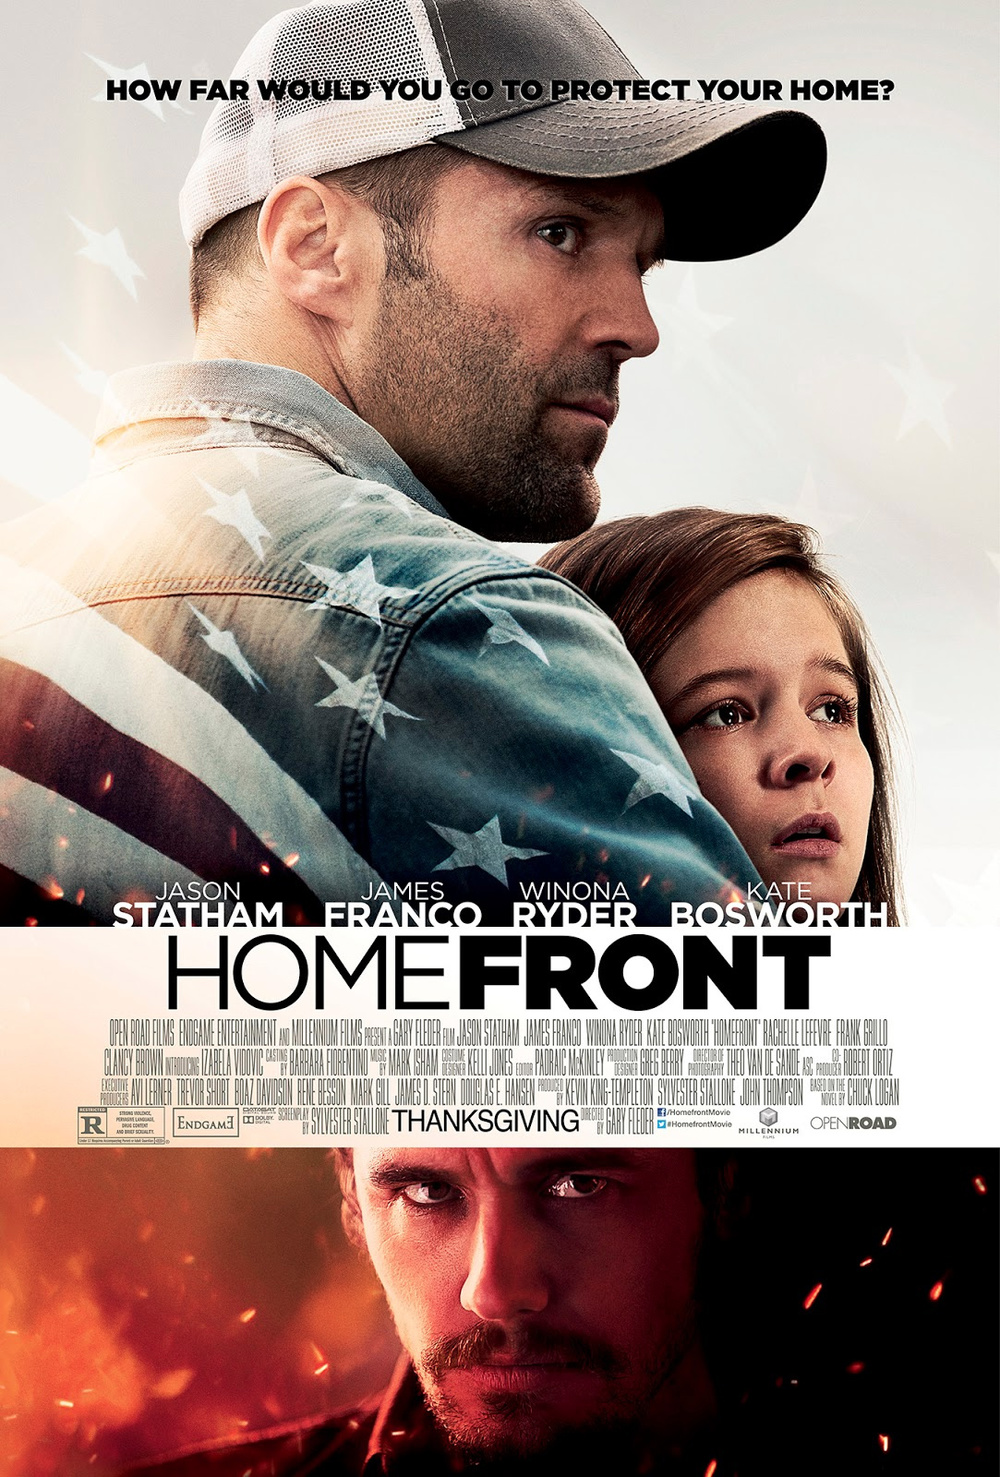 red-band-trailer-for-homefront-with-statham-and-franco.jpg